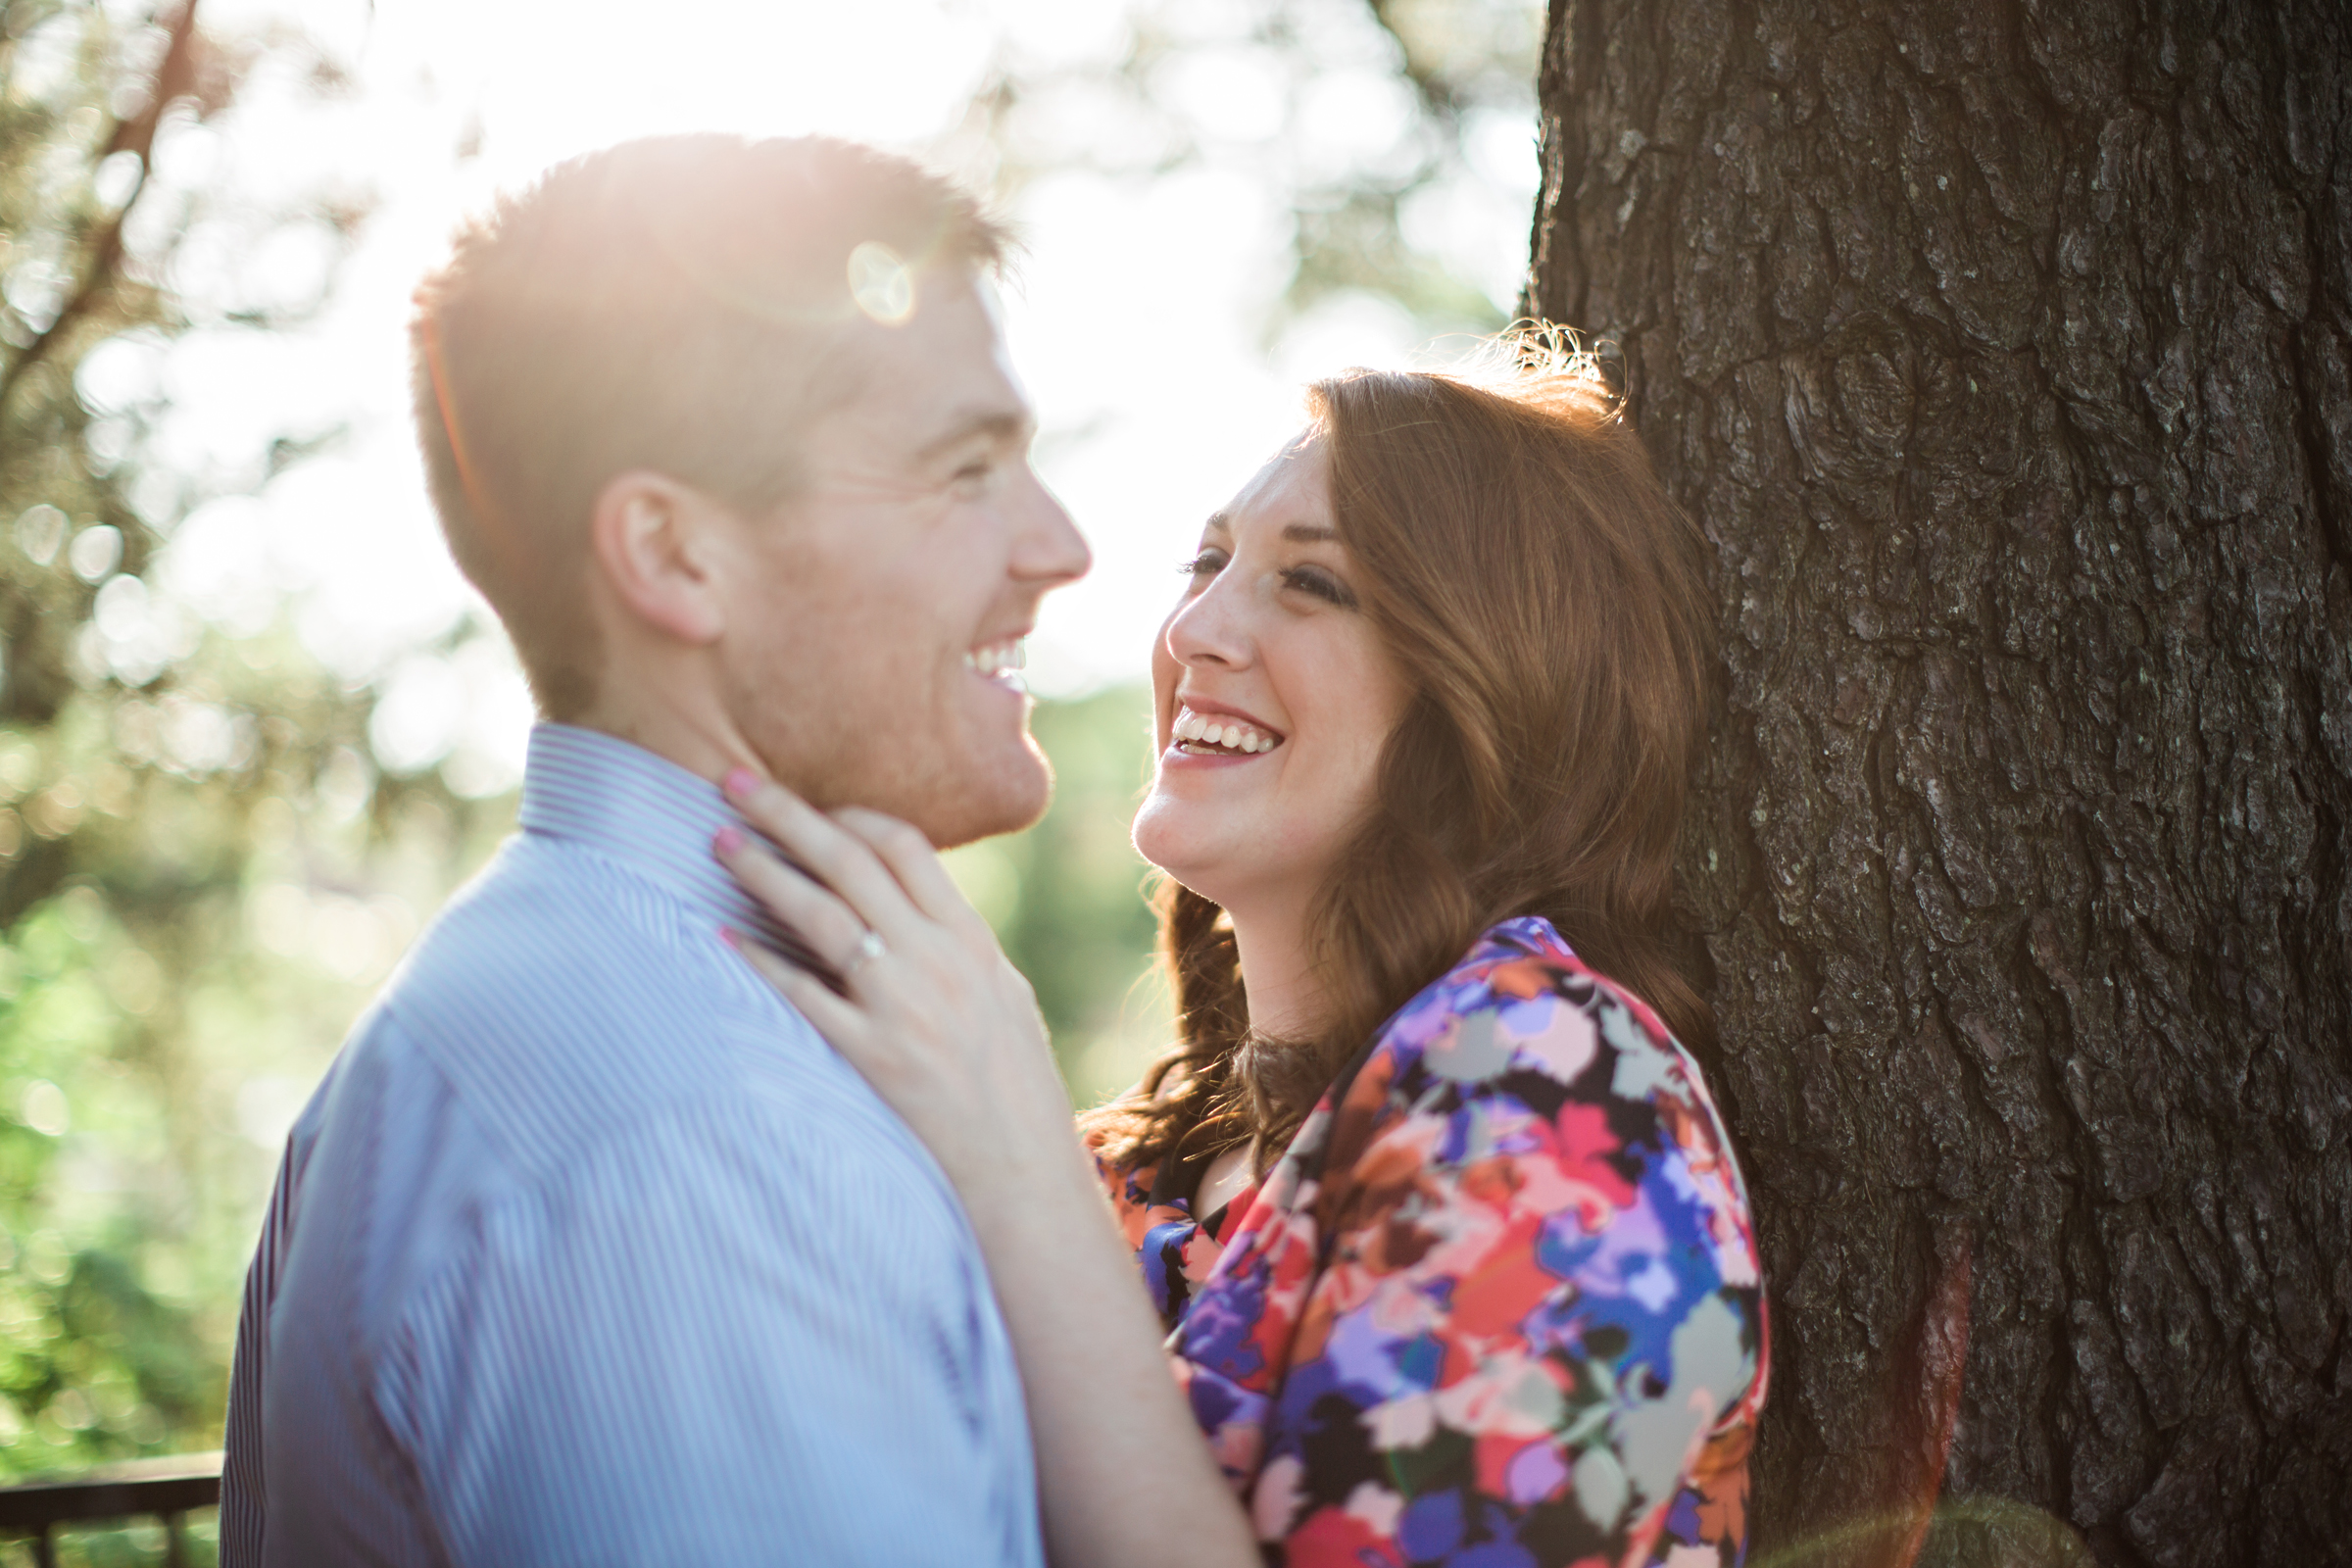 Nick-Drollette-Photography-Alabama-Engagements-Birmingham-Shelby-Logan-130.jpg